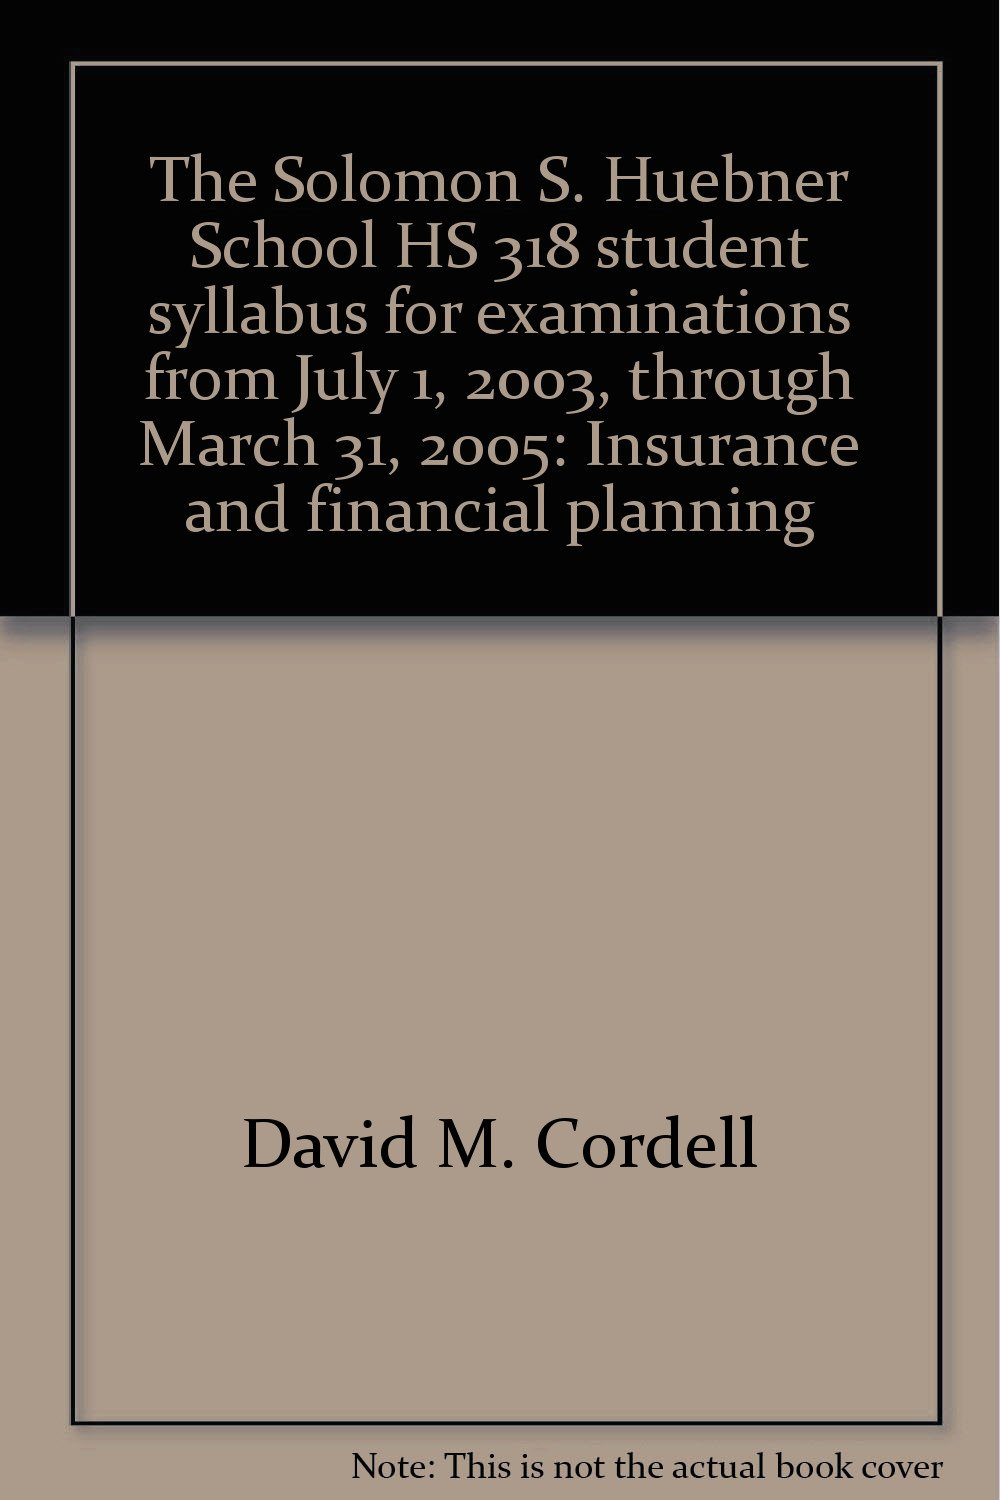 The Solomon S. Huebner School HS 318 student syllabus for examinations from July 1, 2003, through March 31, 2005: Insurance and financial planning pdf